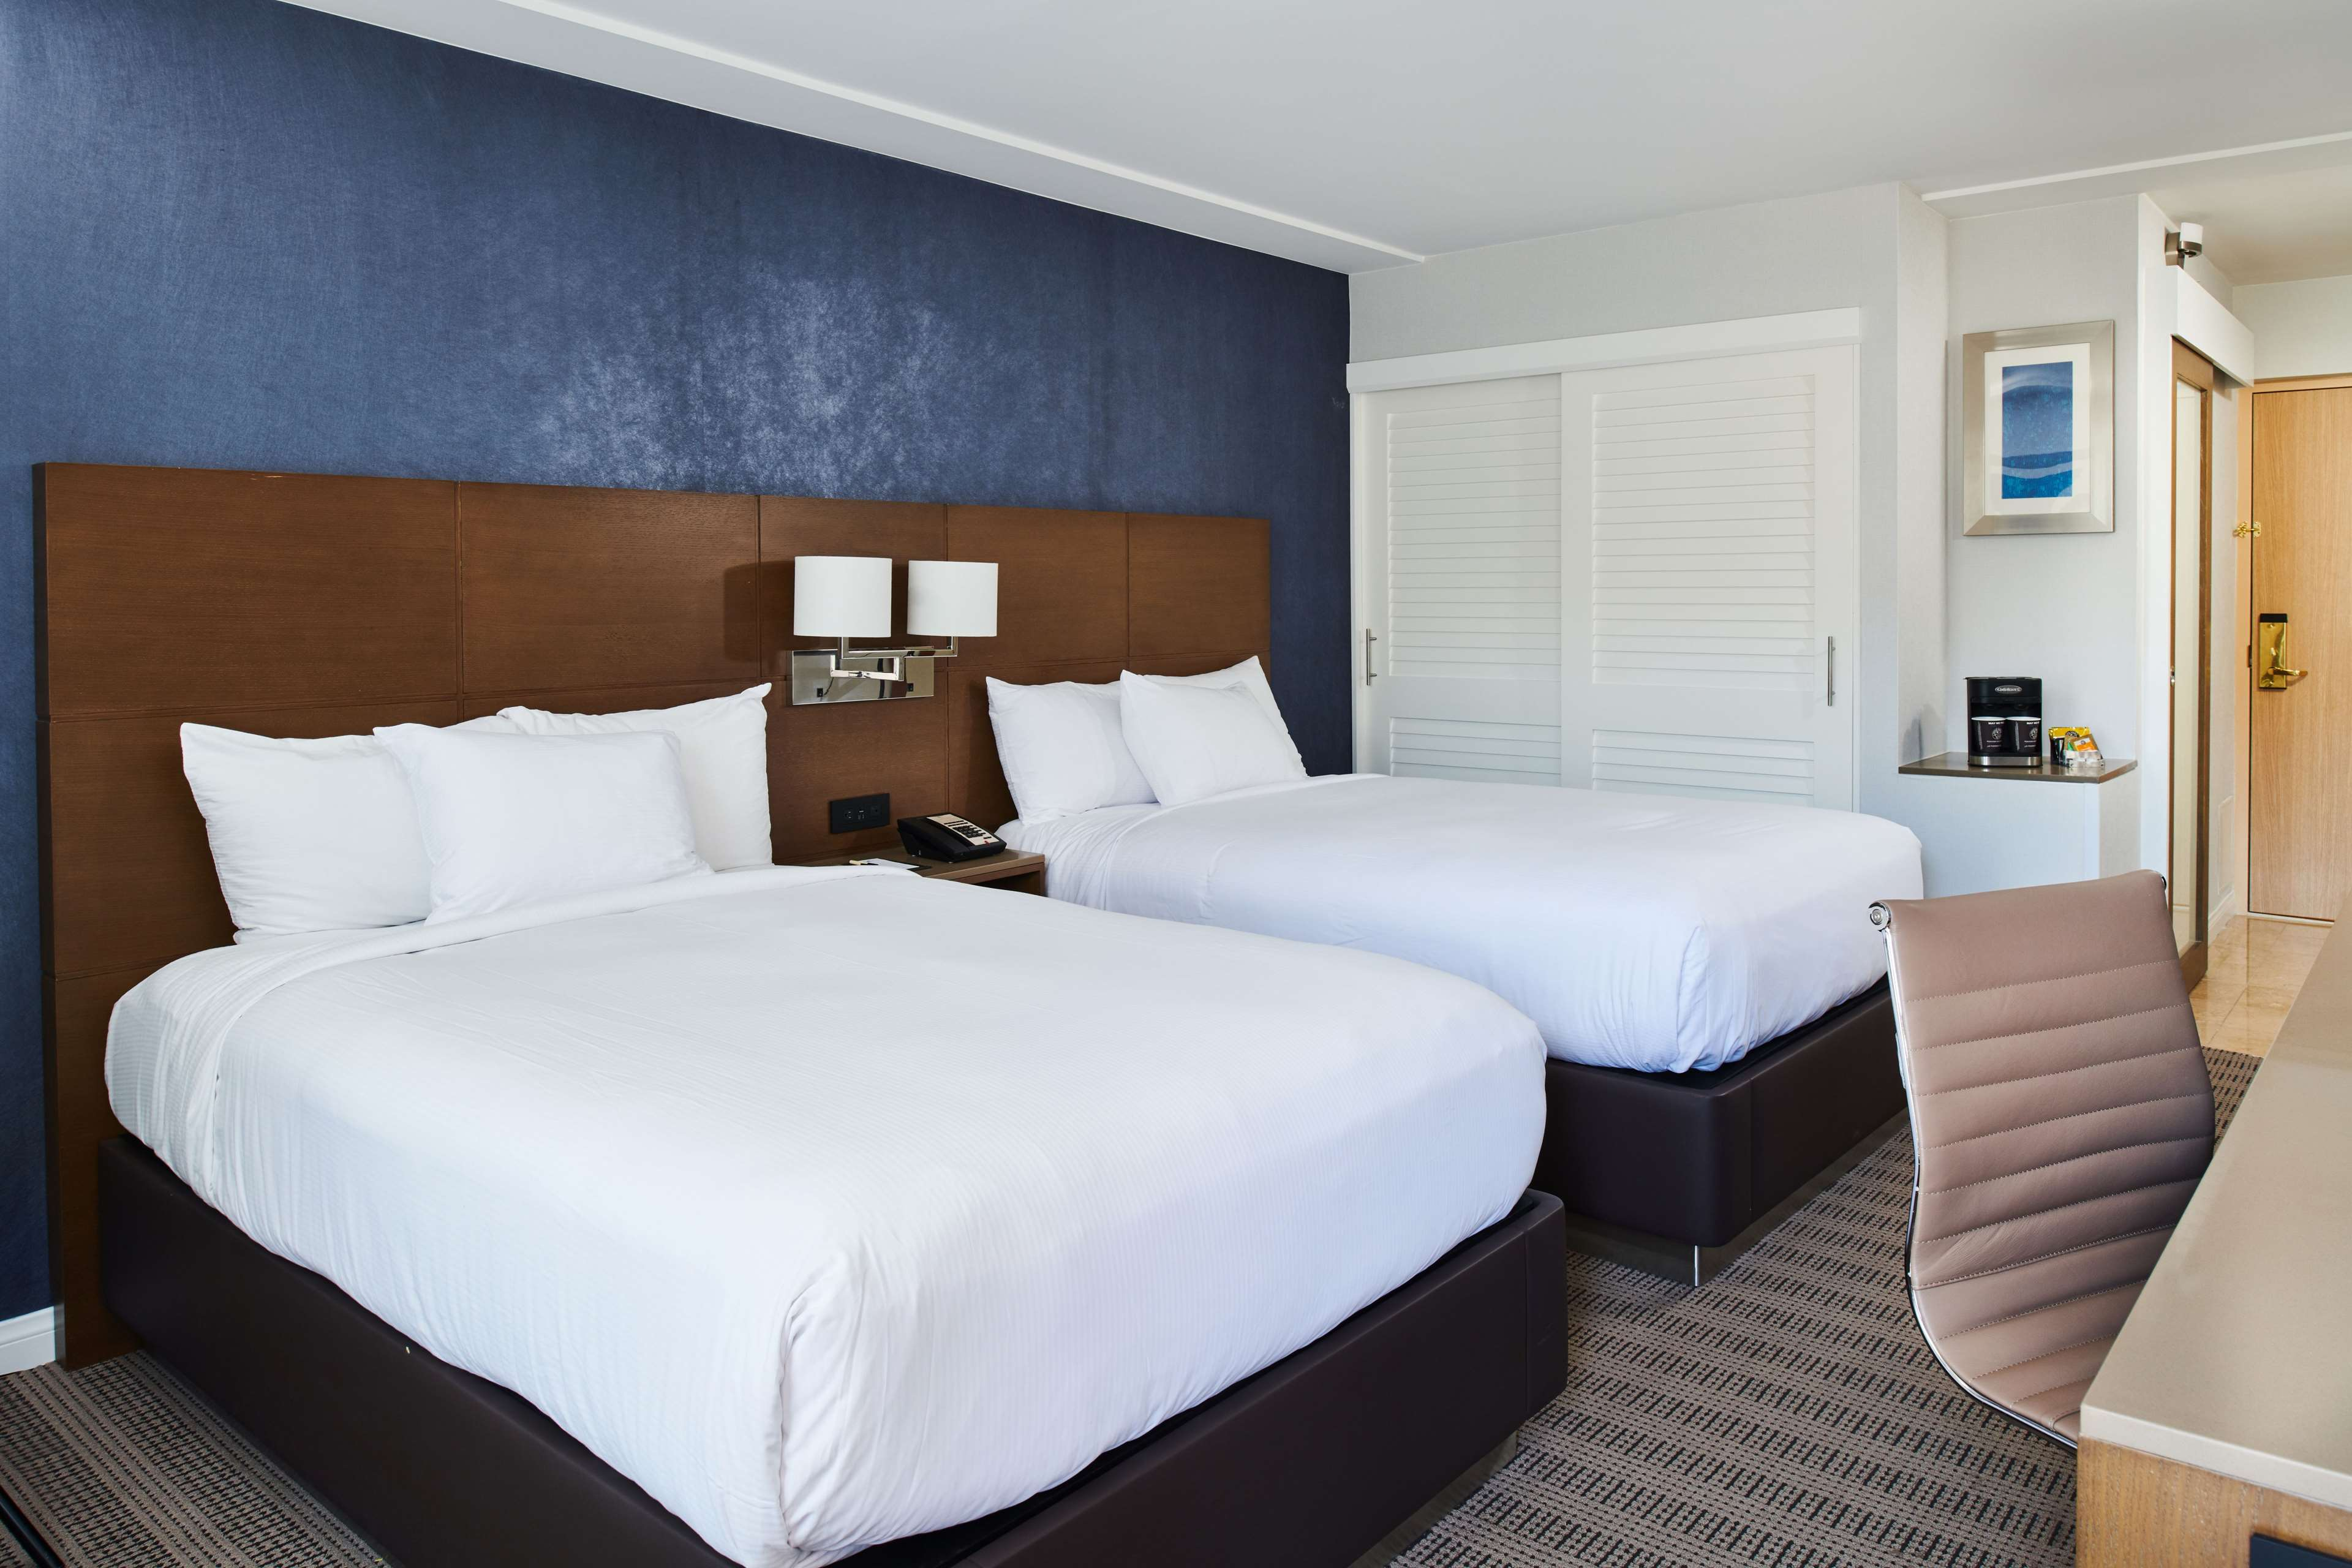 DoubleTree by Hilton Hotel Torrance - South Bay image 15